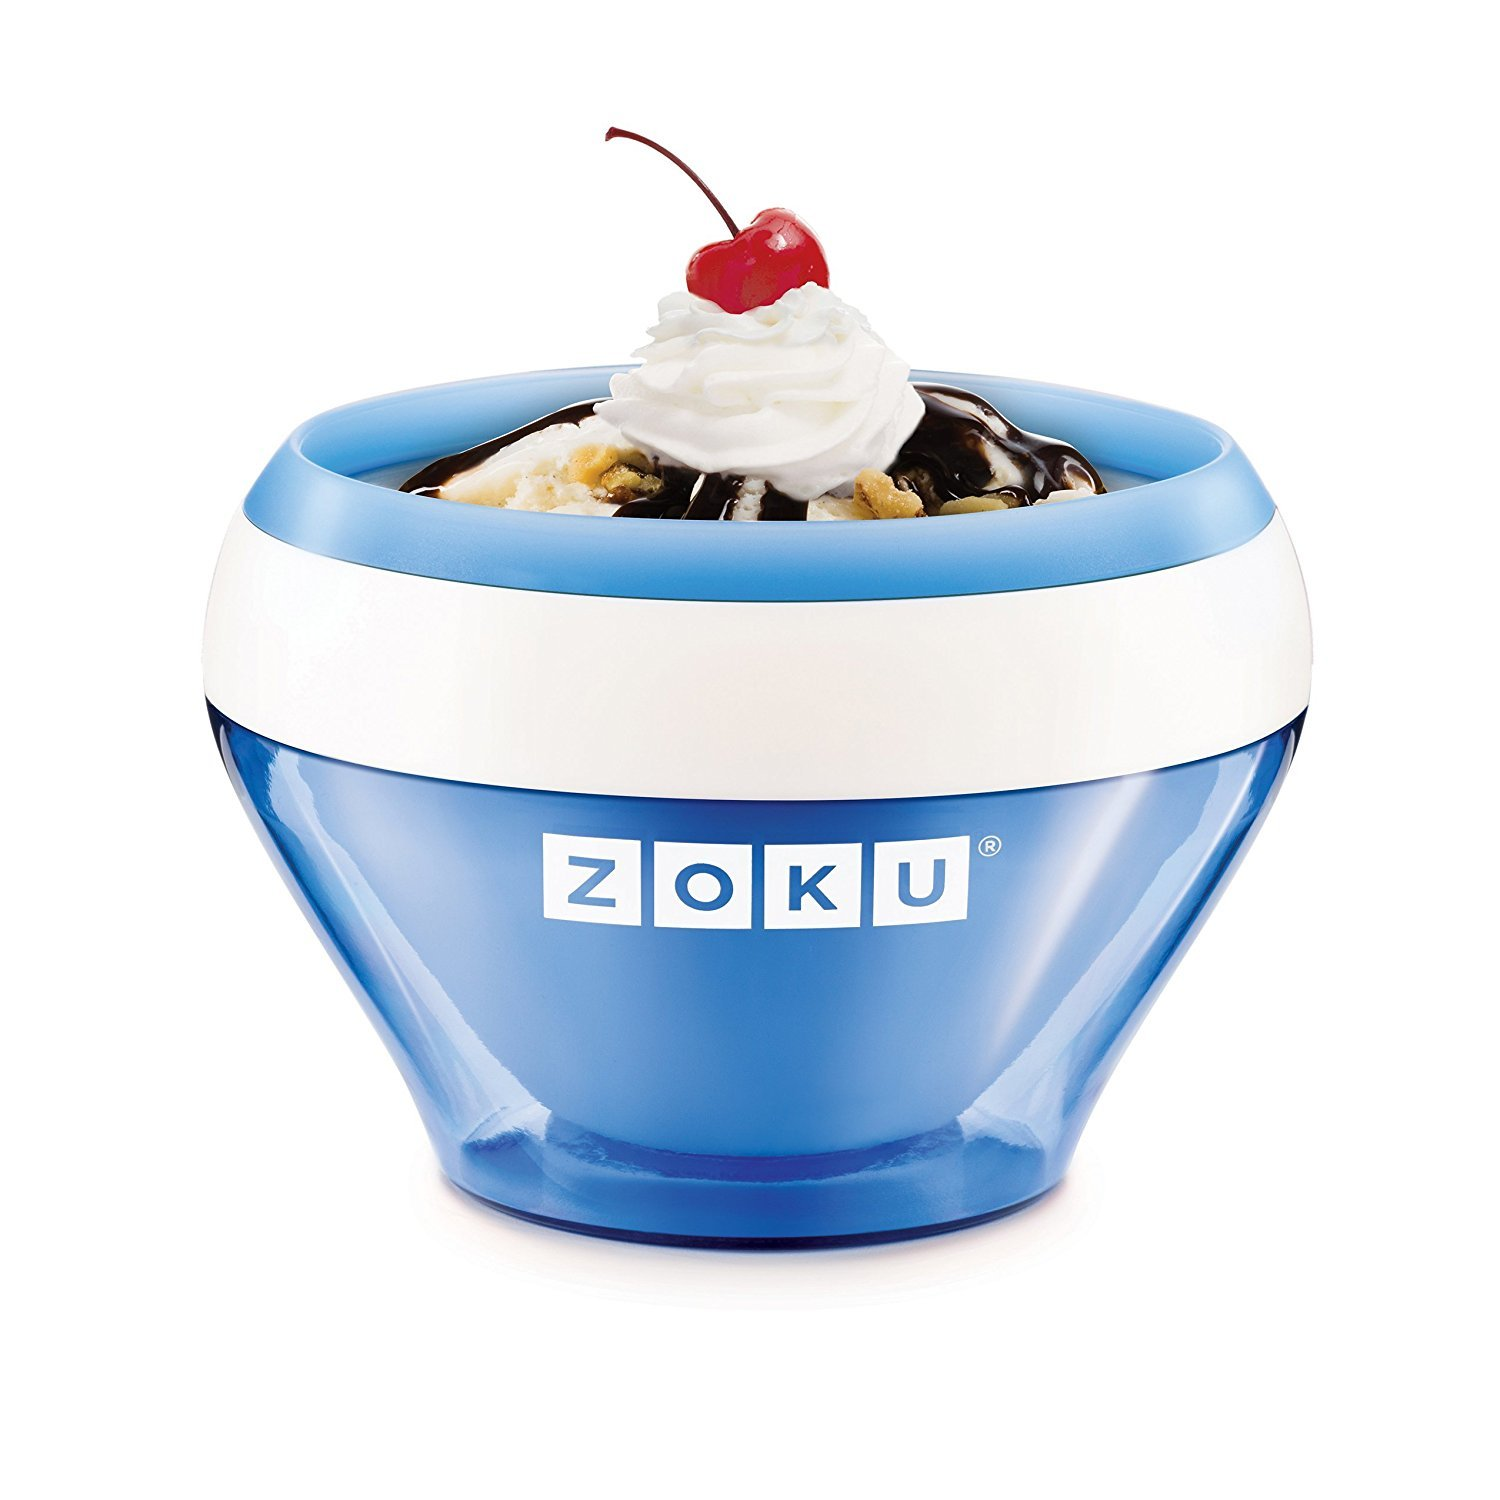 Zoku Purple Ice Cream Maker, Instant Ice Cream Maker